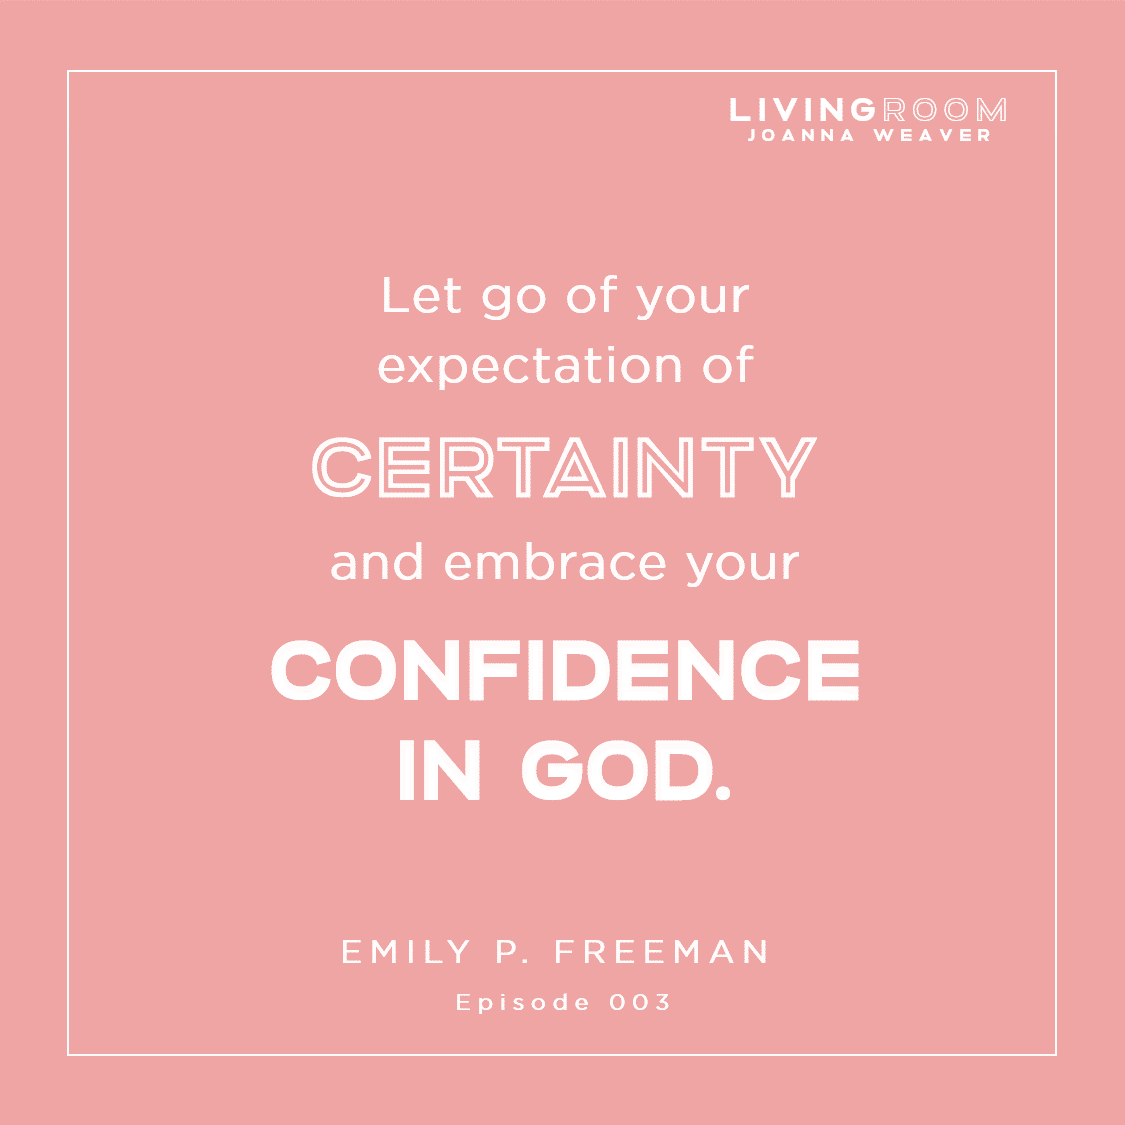 TLR 003 - Confidence in God - Emily P. Freeman